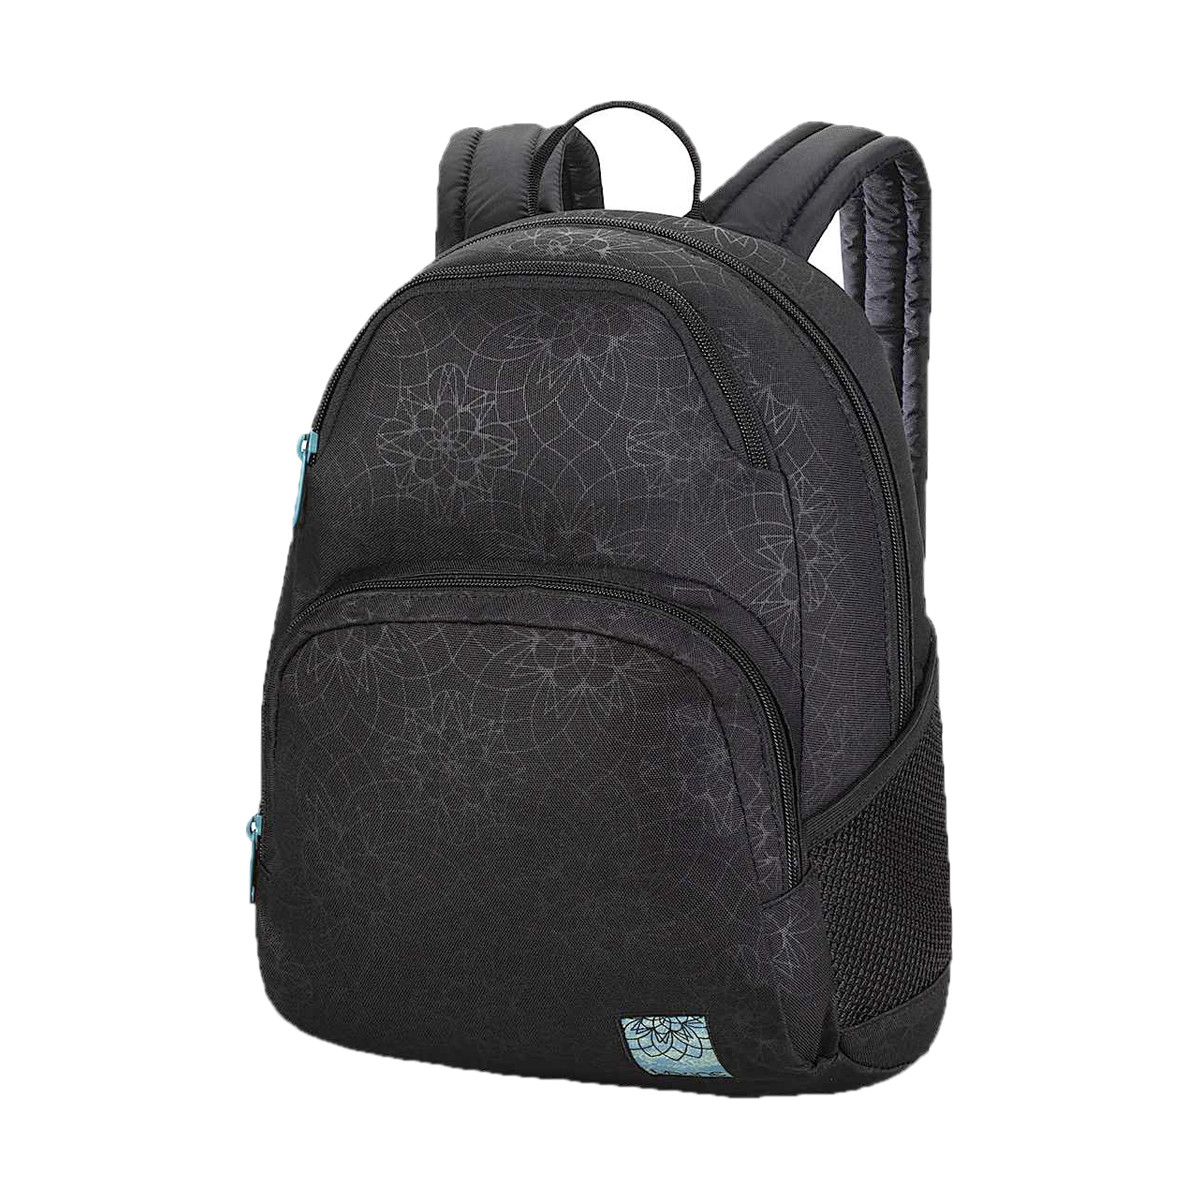 DaKine Milo Backpack